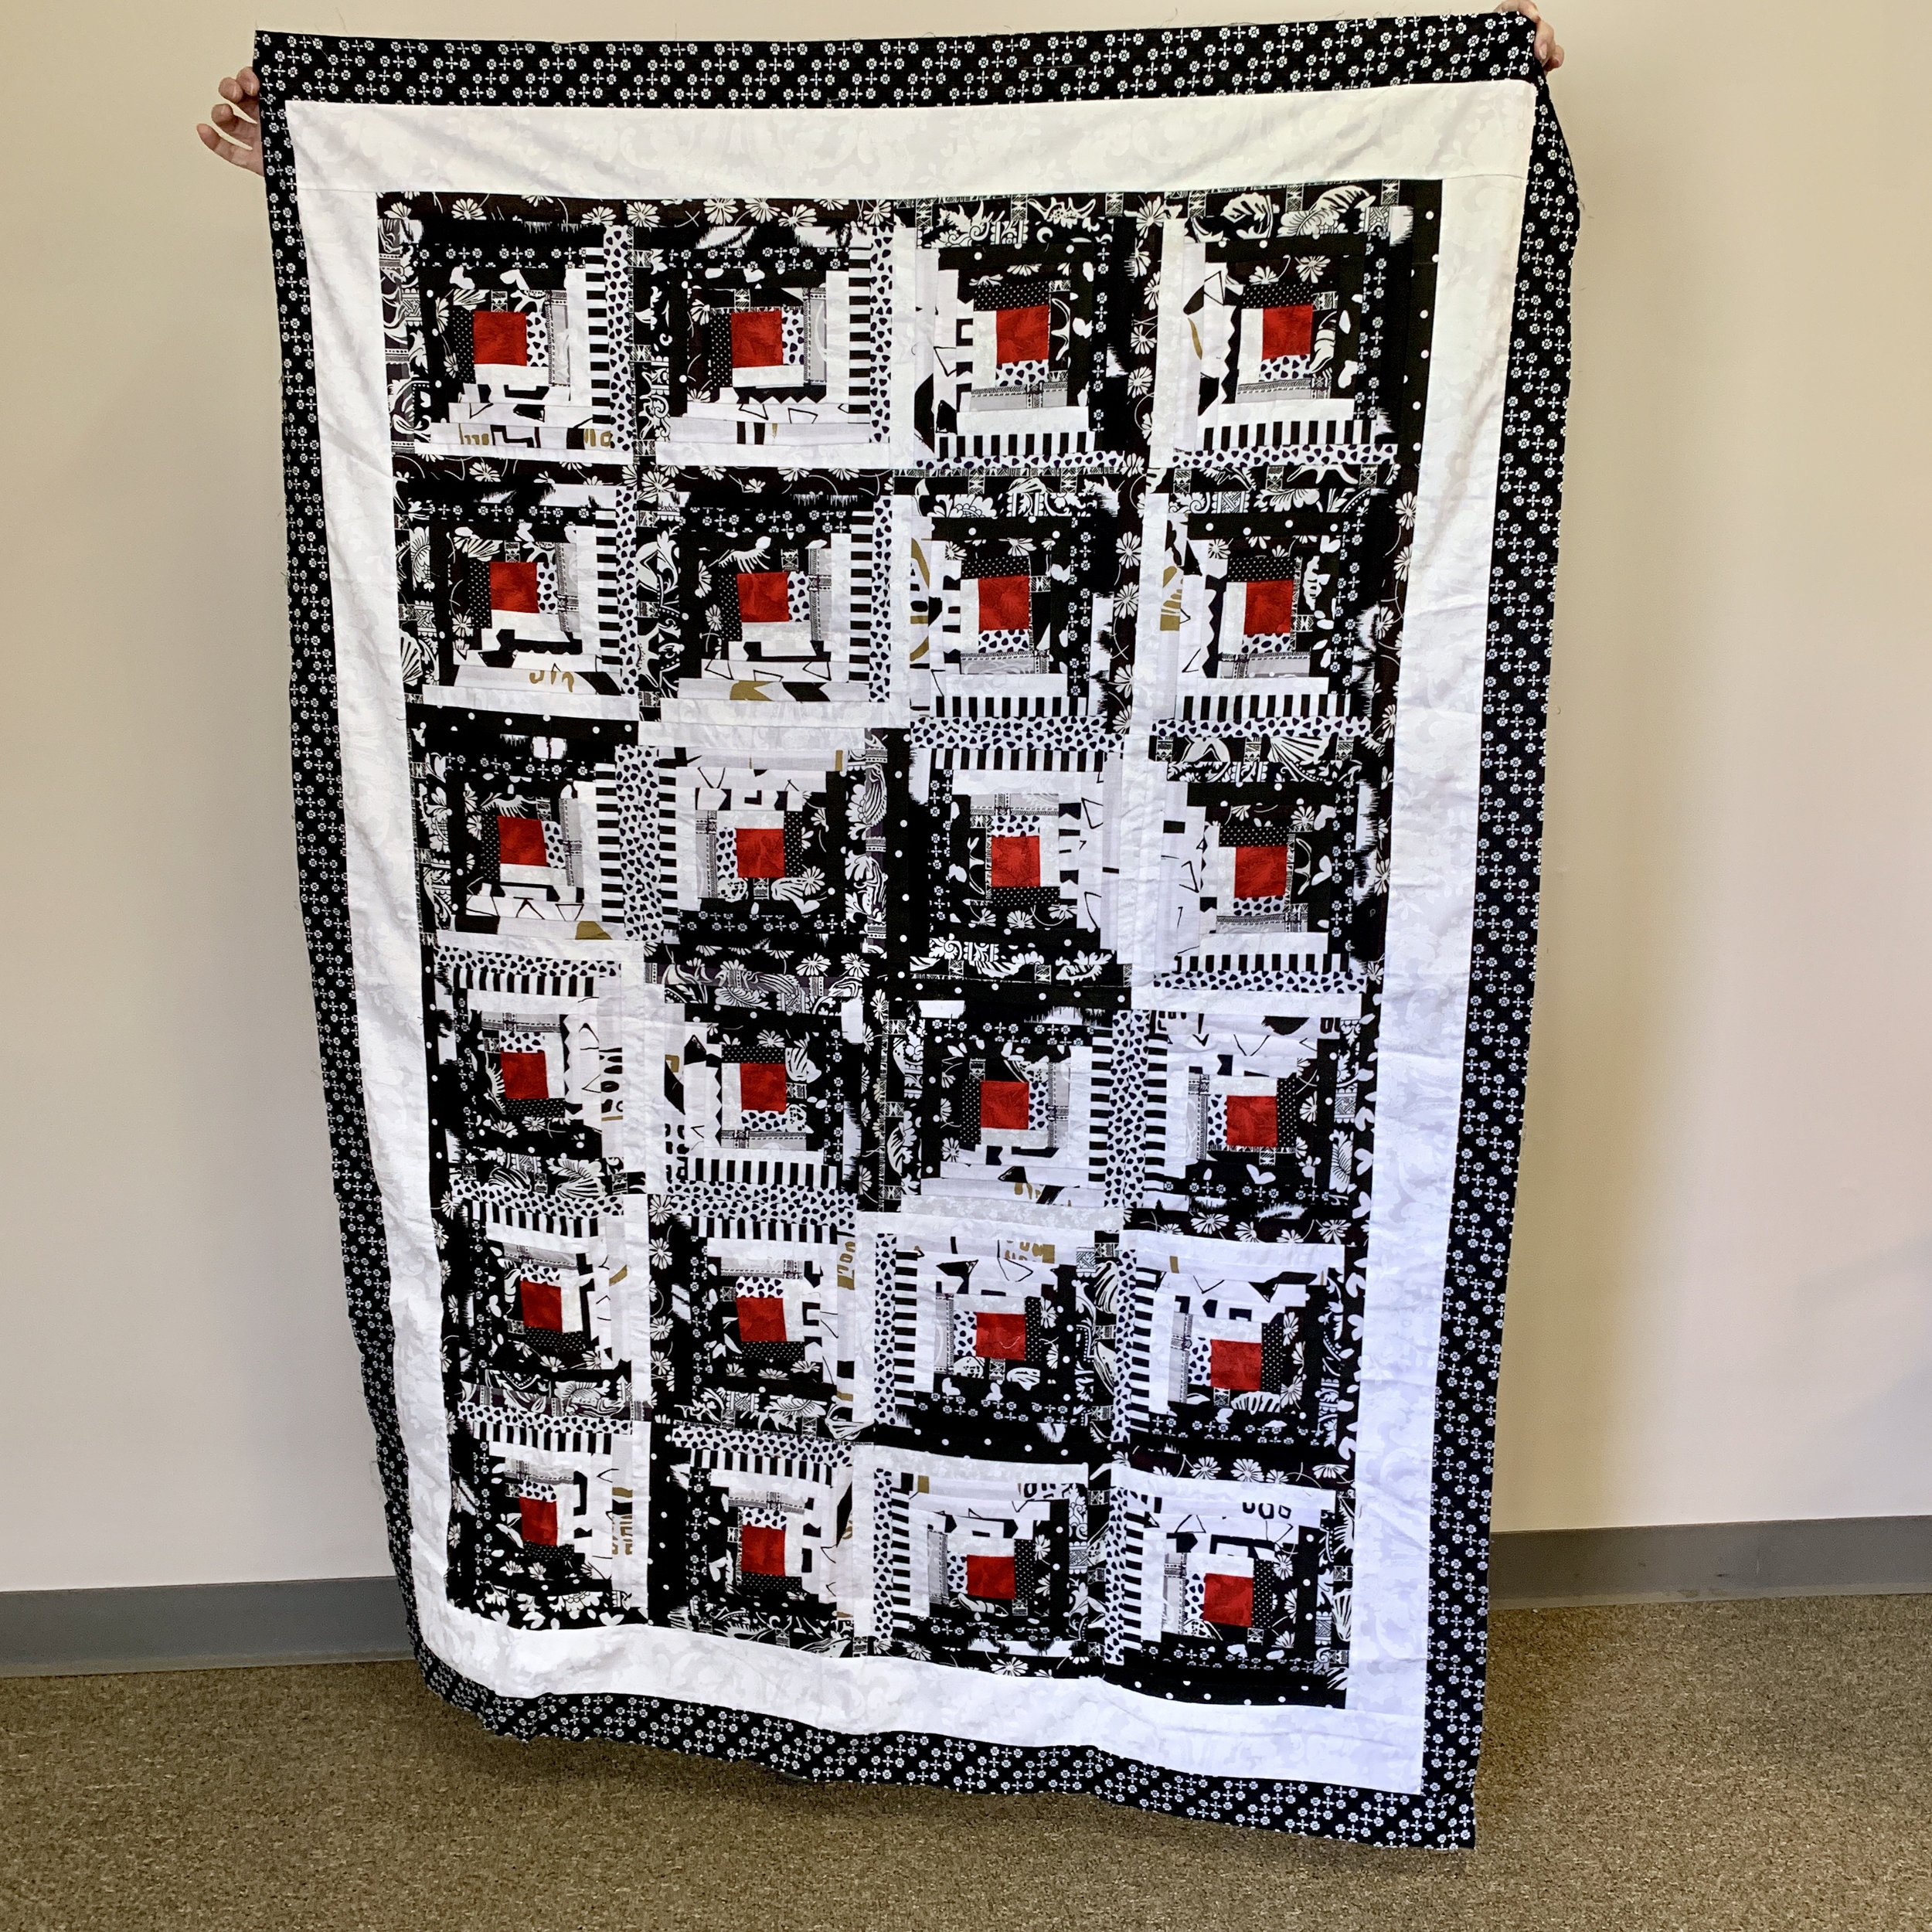 Quilt by Chris Sufras